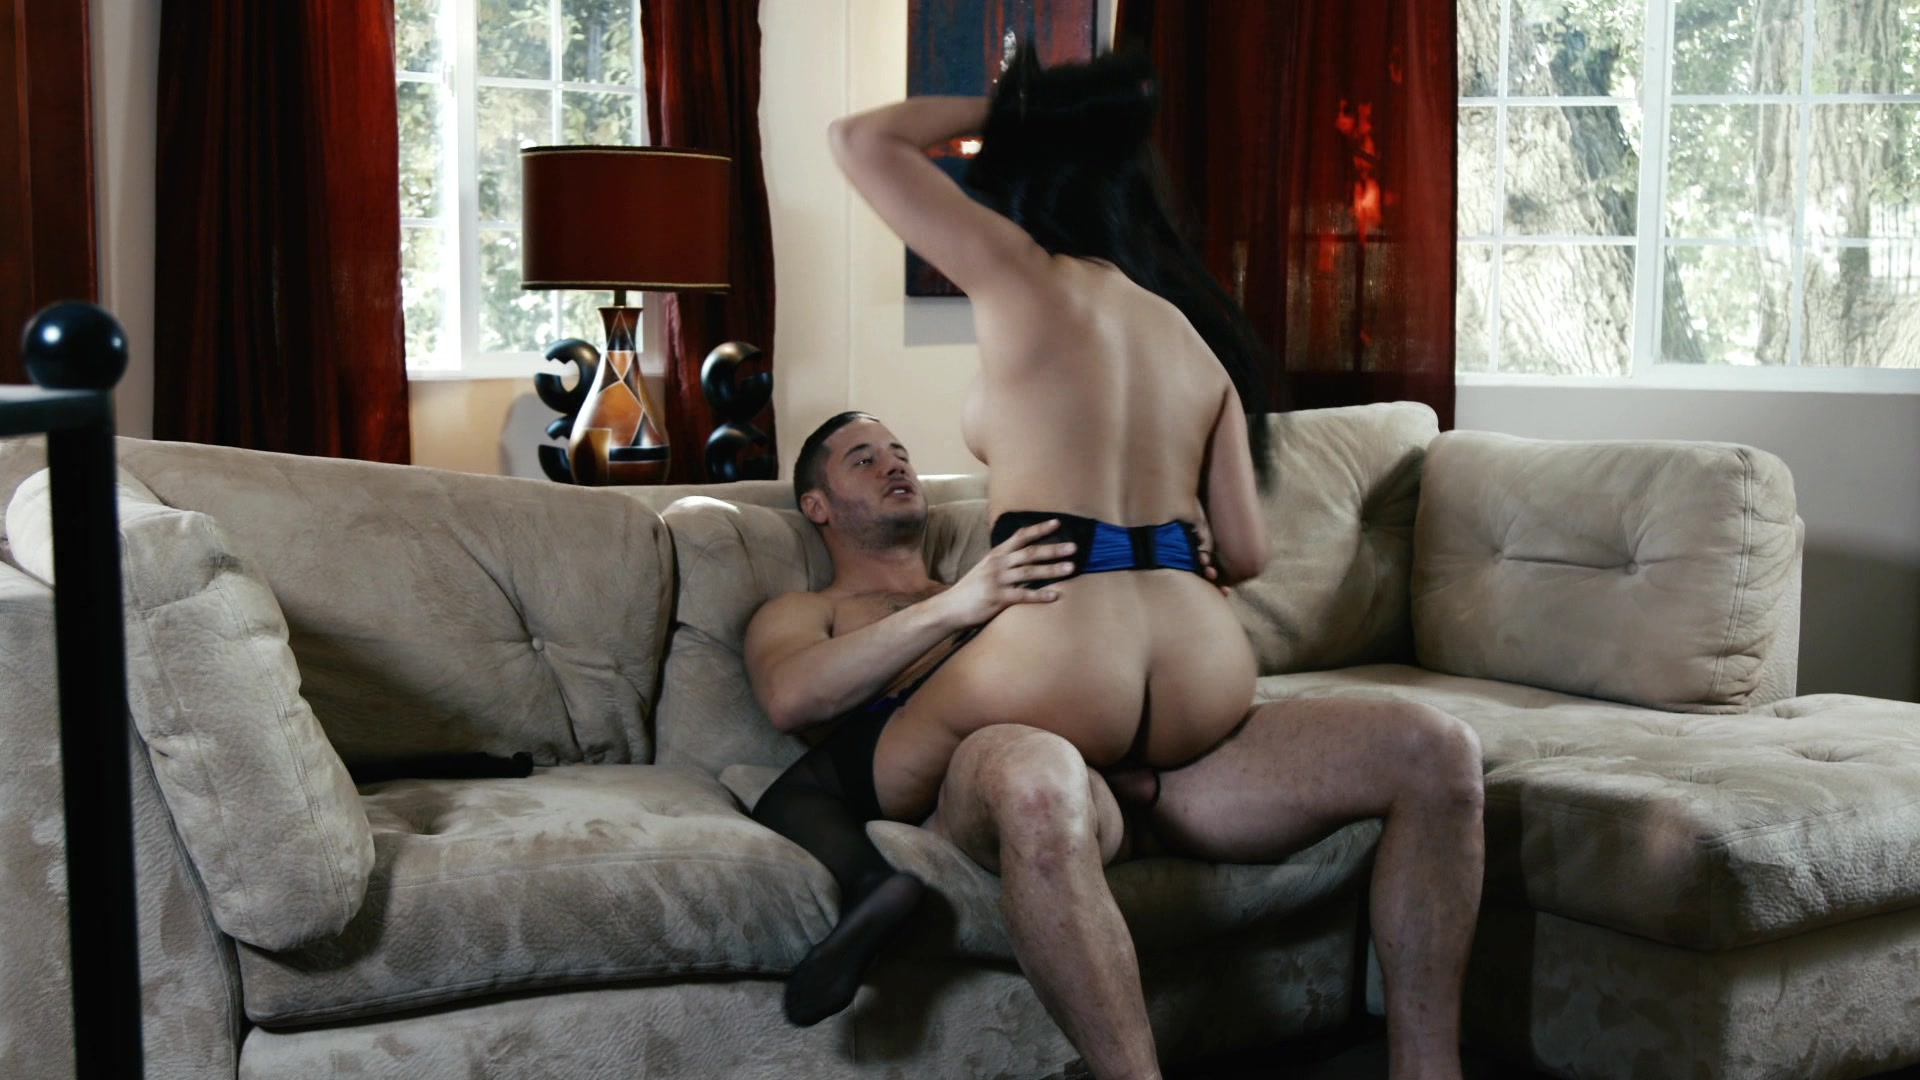 Scene with Danny Mountain and Mercedes Carrera - image 20 out of 20